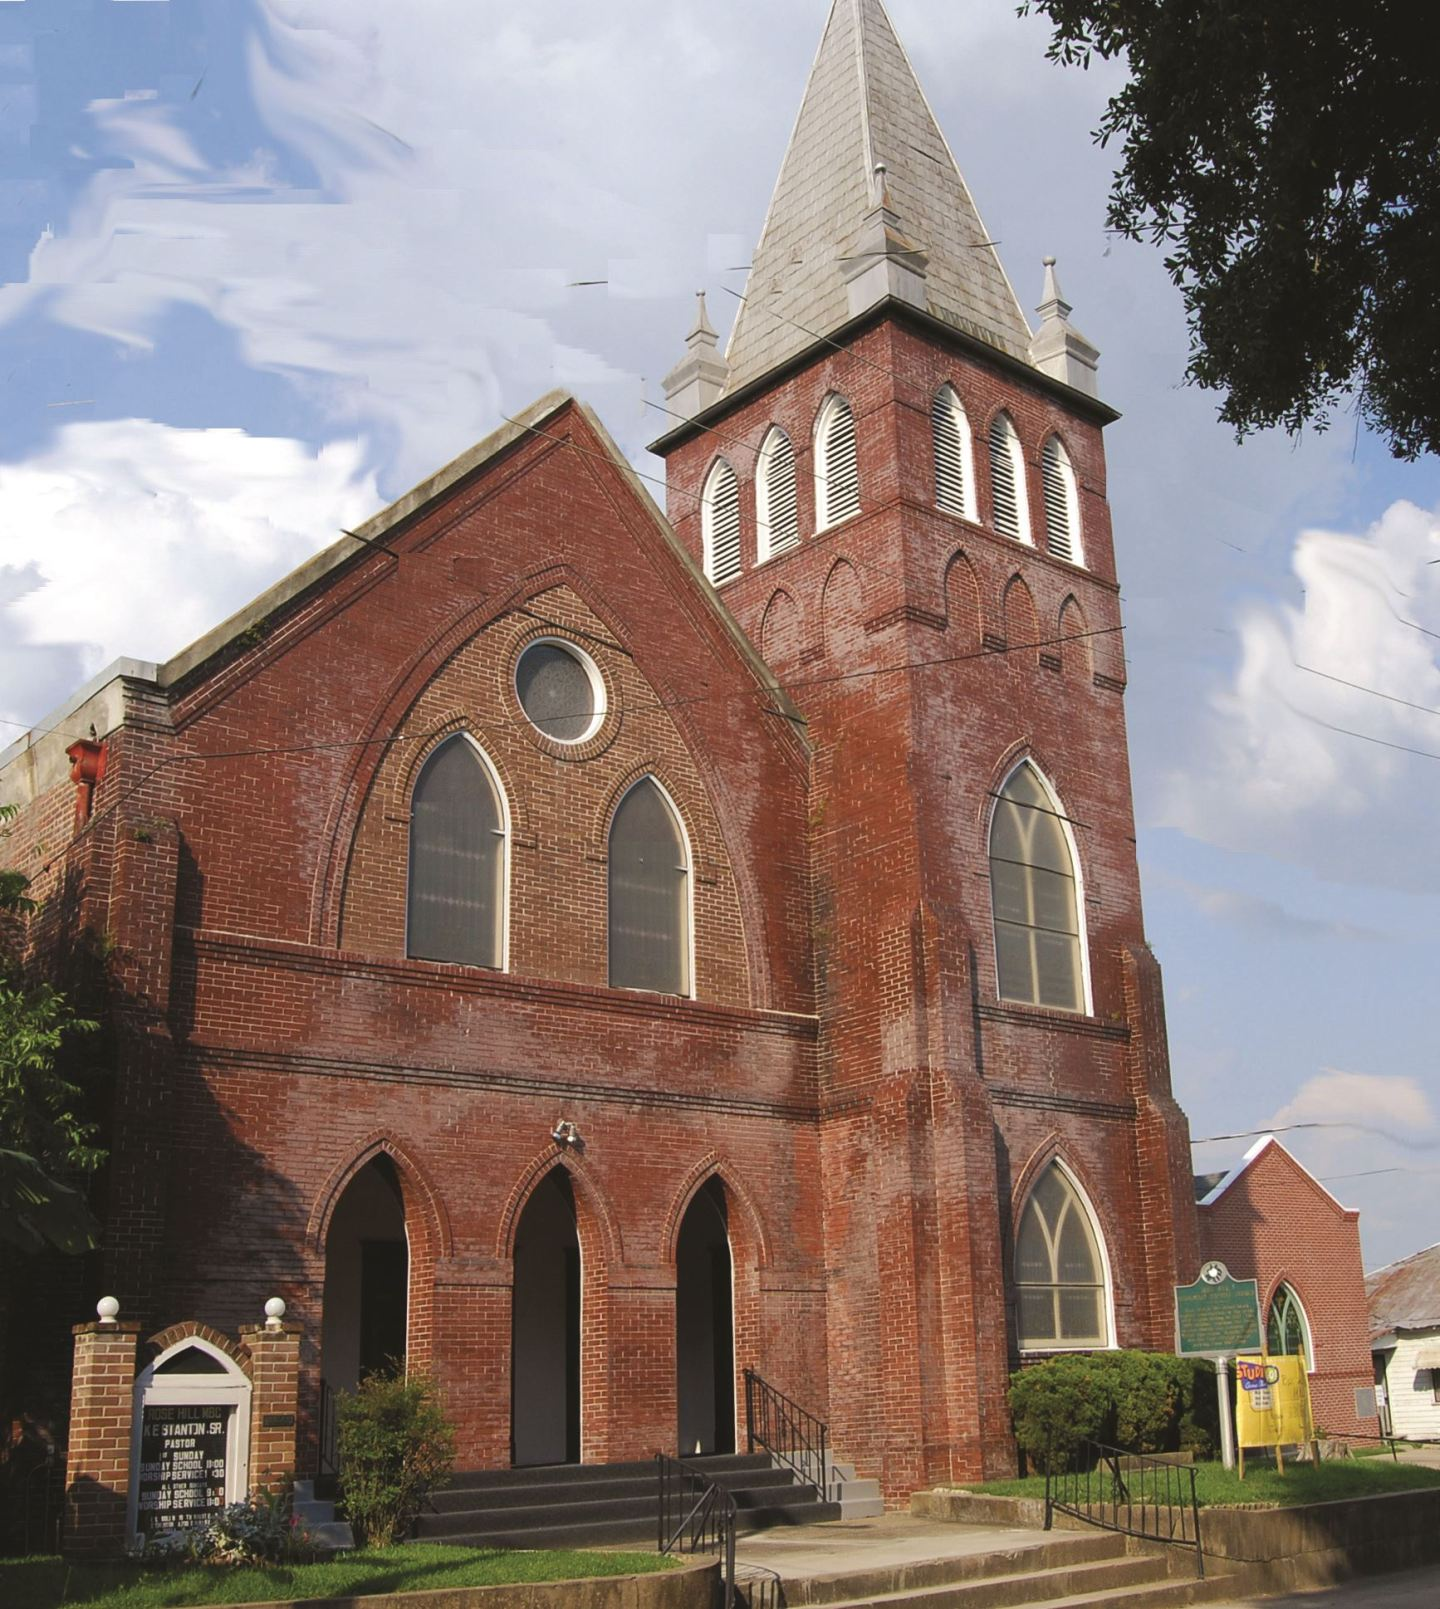 rose_hill_mb_church-1440x1609 New Year's Eve Travel: Historic Black Churches to Visit for Watch Night Celebrations